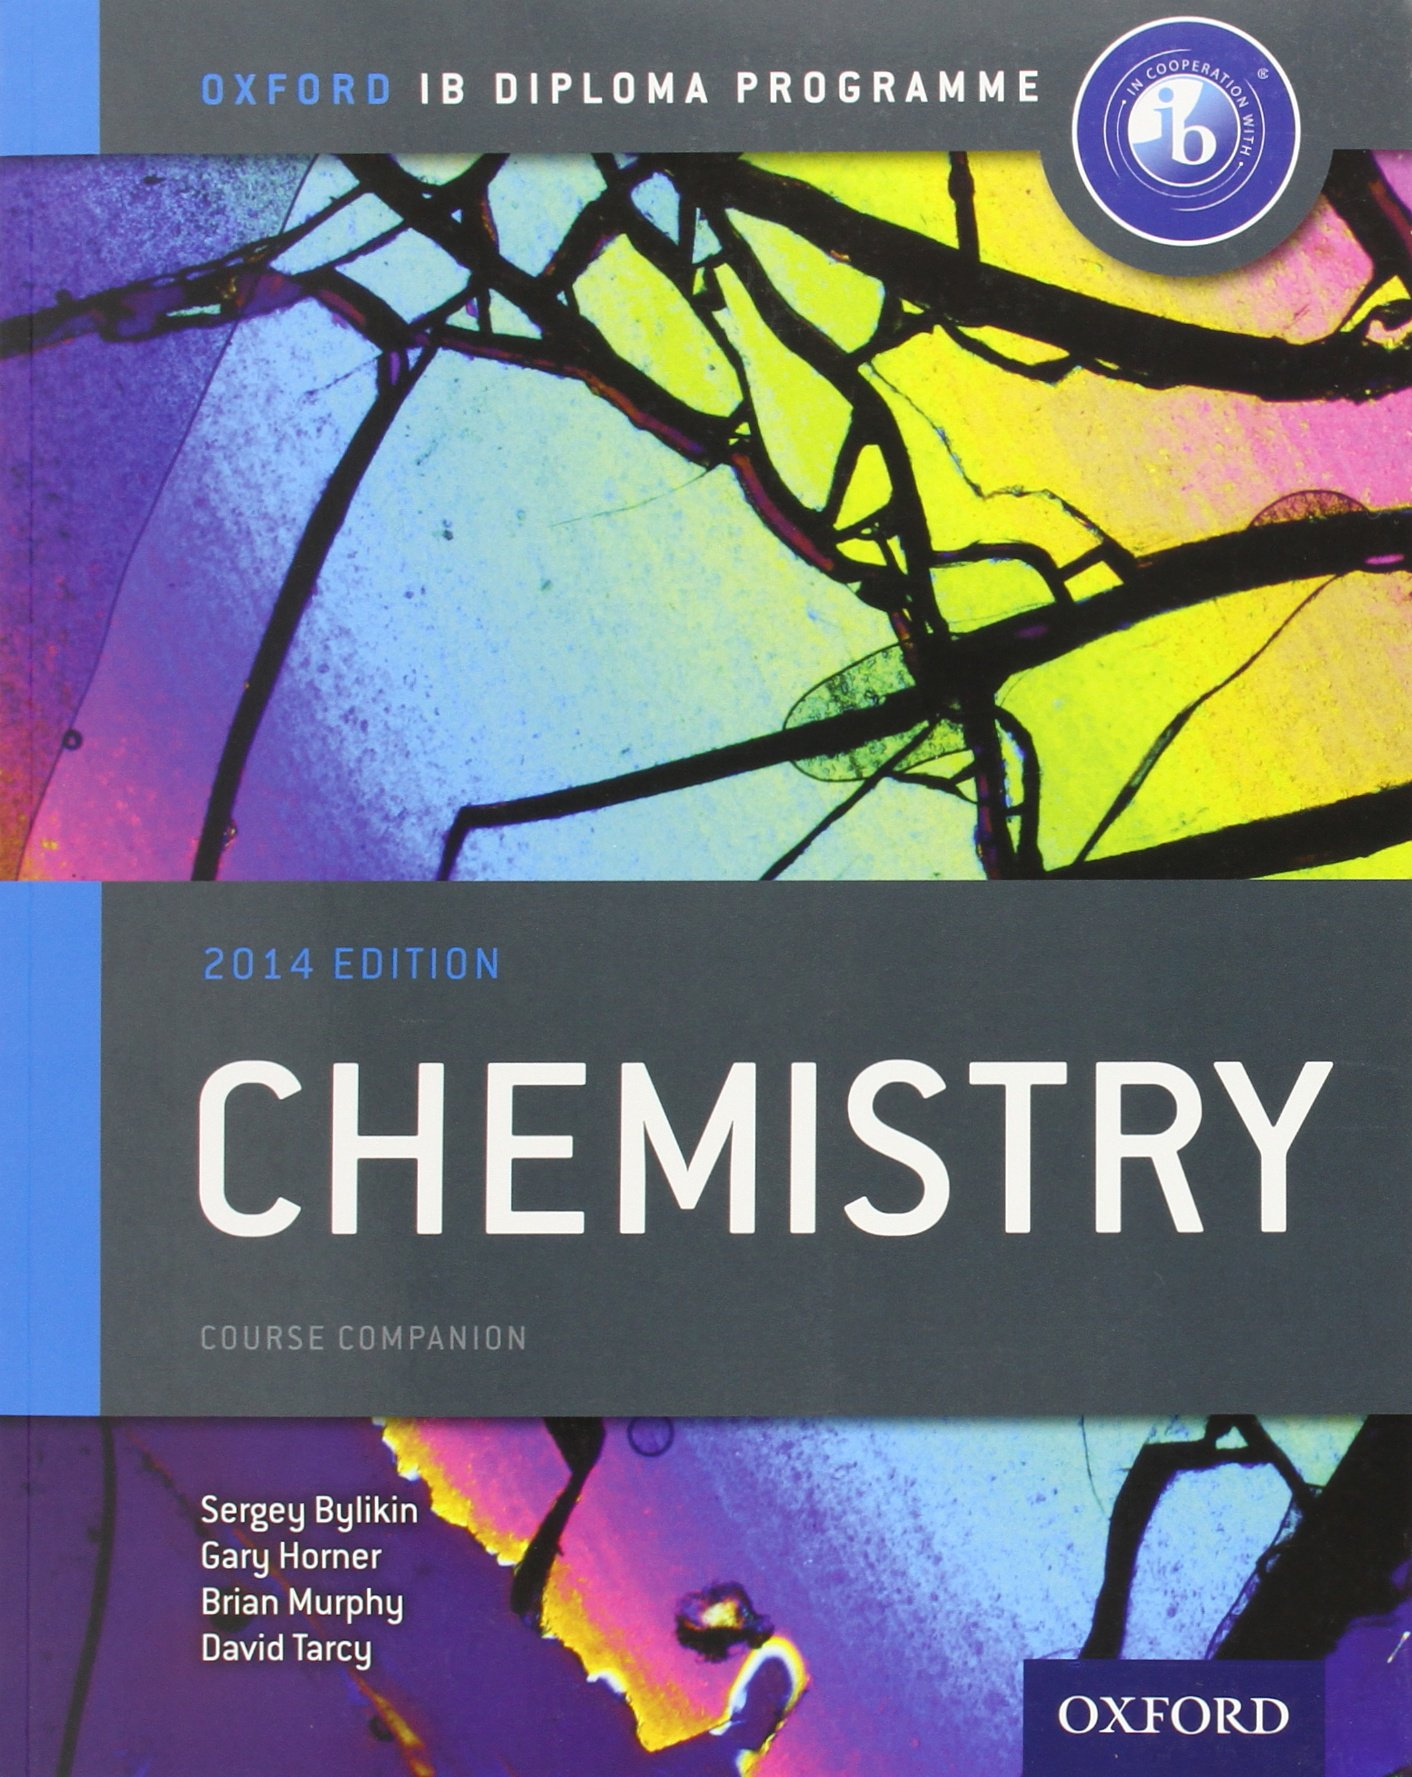 Amazoncom Oxford IB Diploma Program Chemistry Course Companion